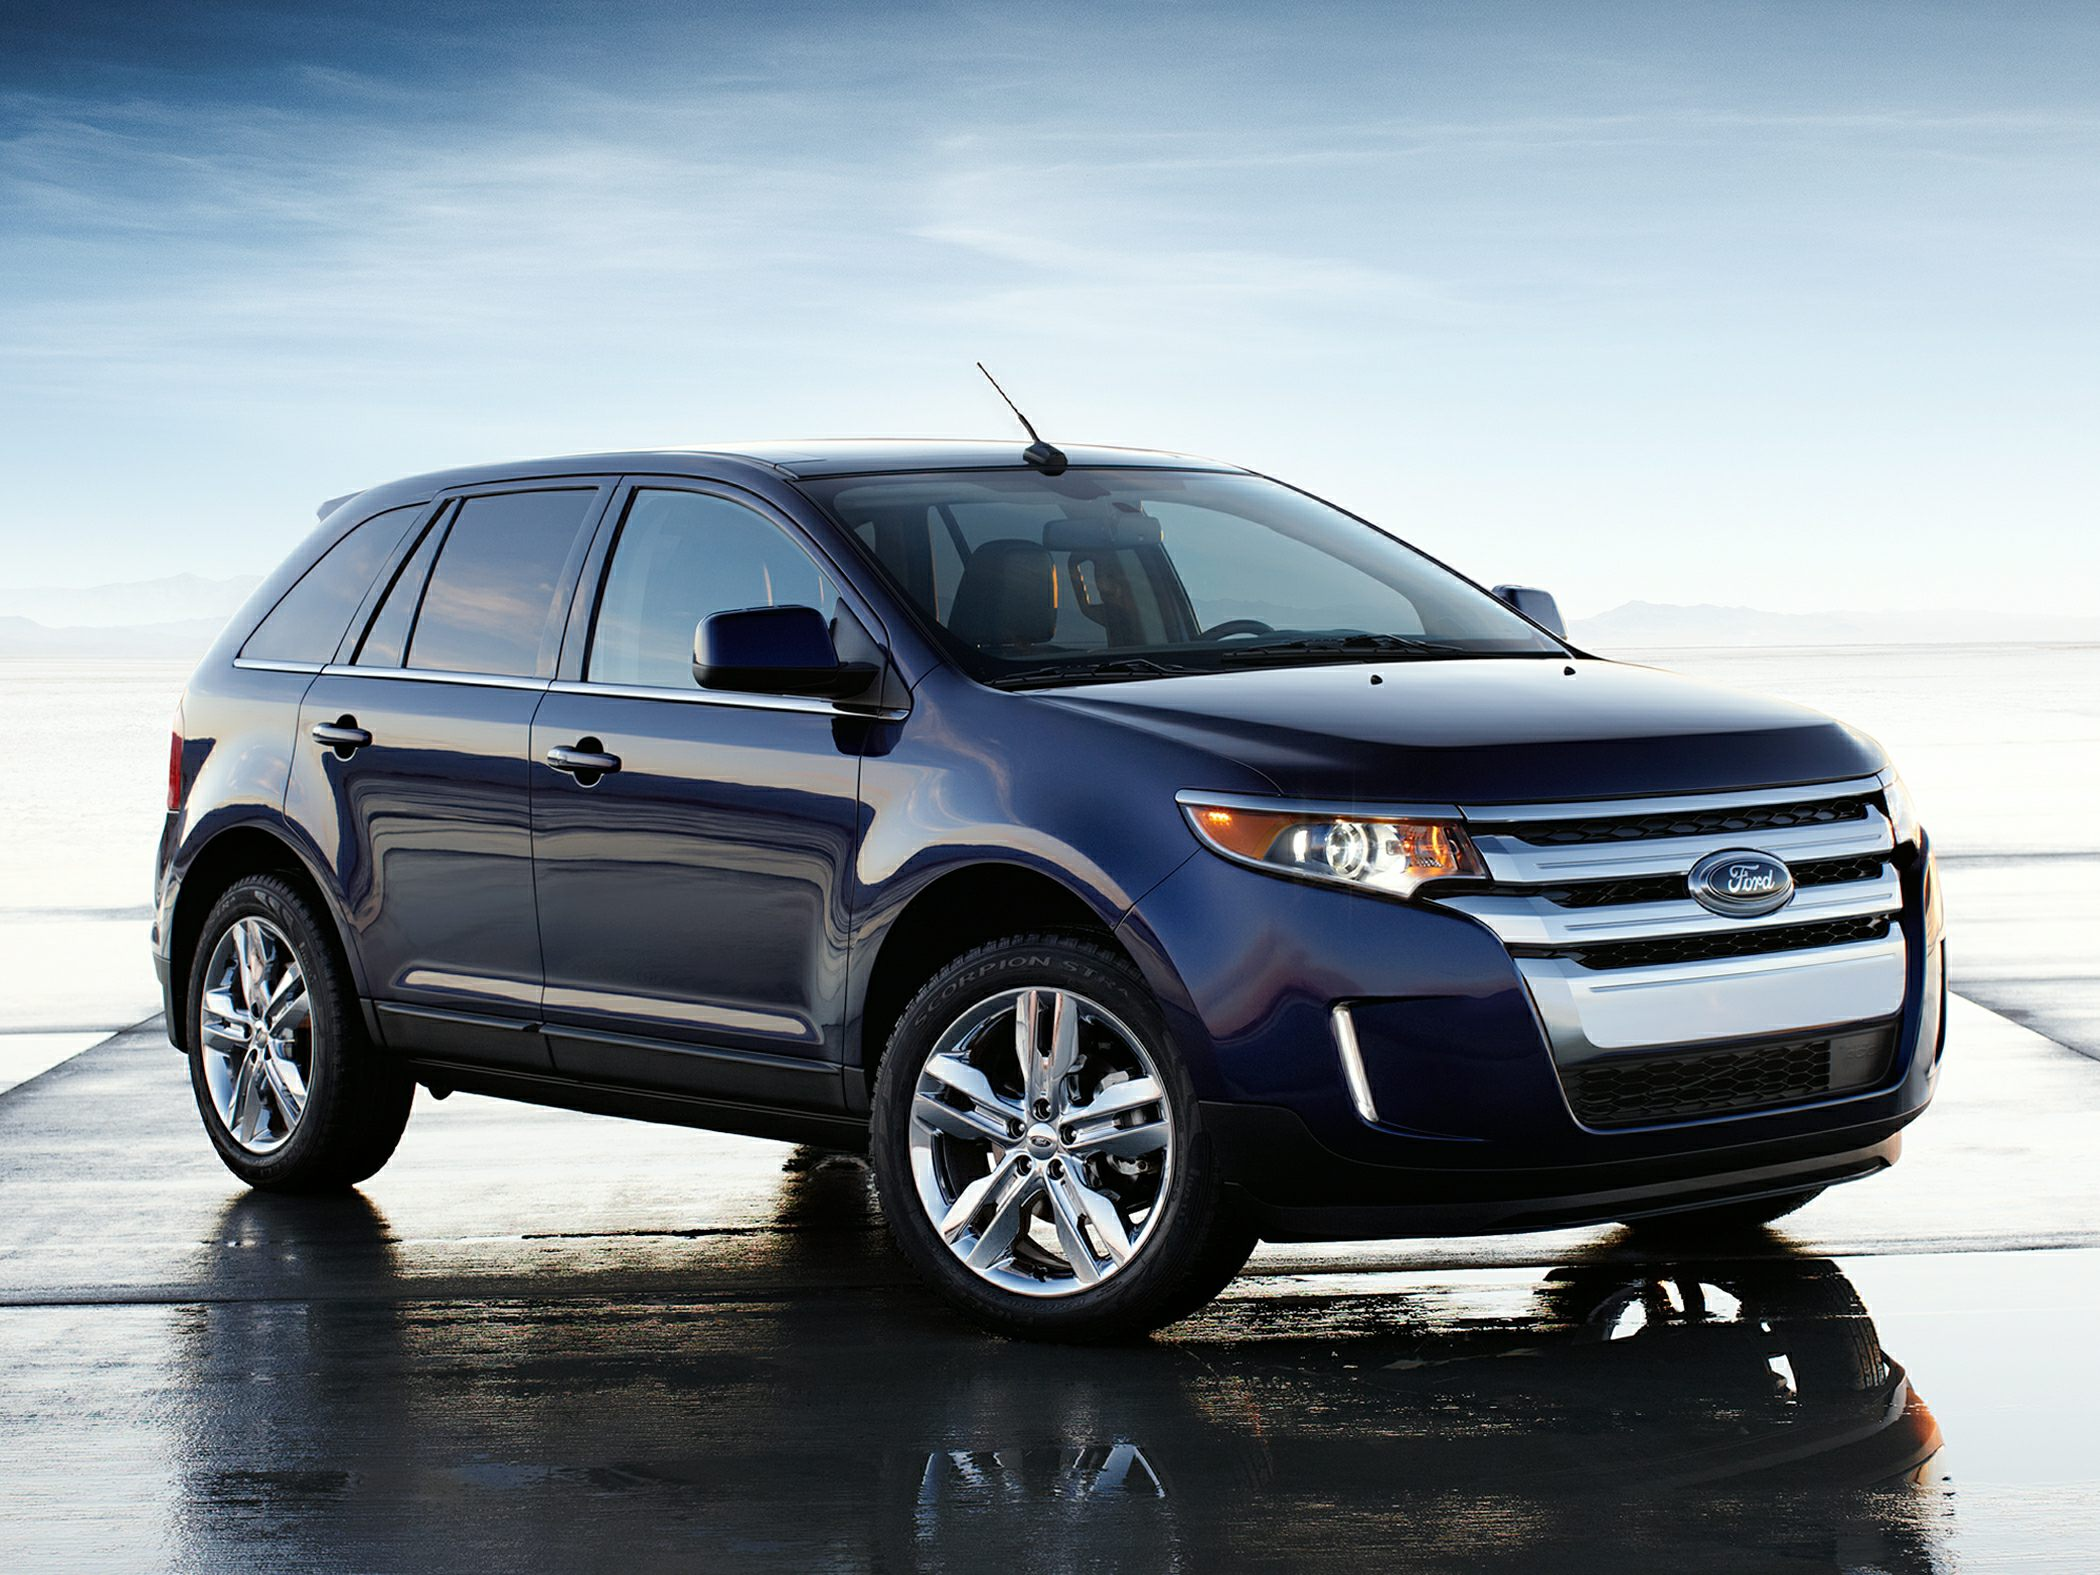 Ford Edge I Restyling 2011 - 2014 SUV 5 door #5